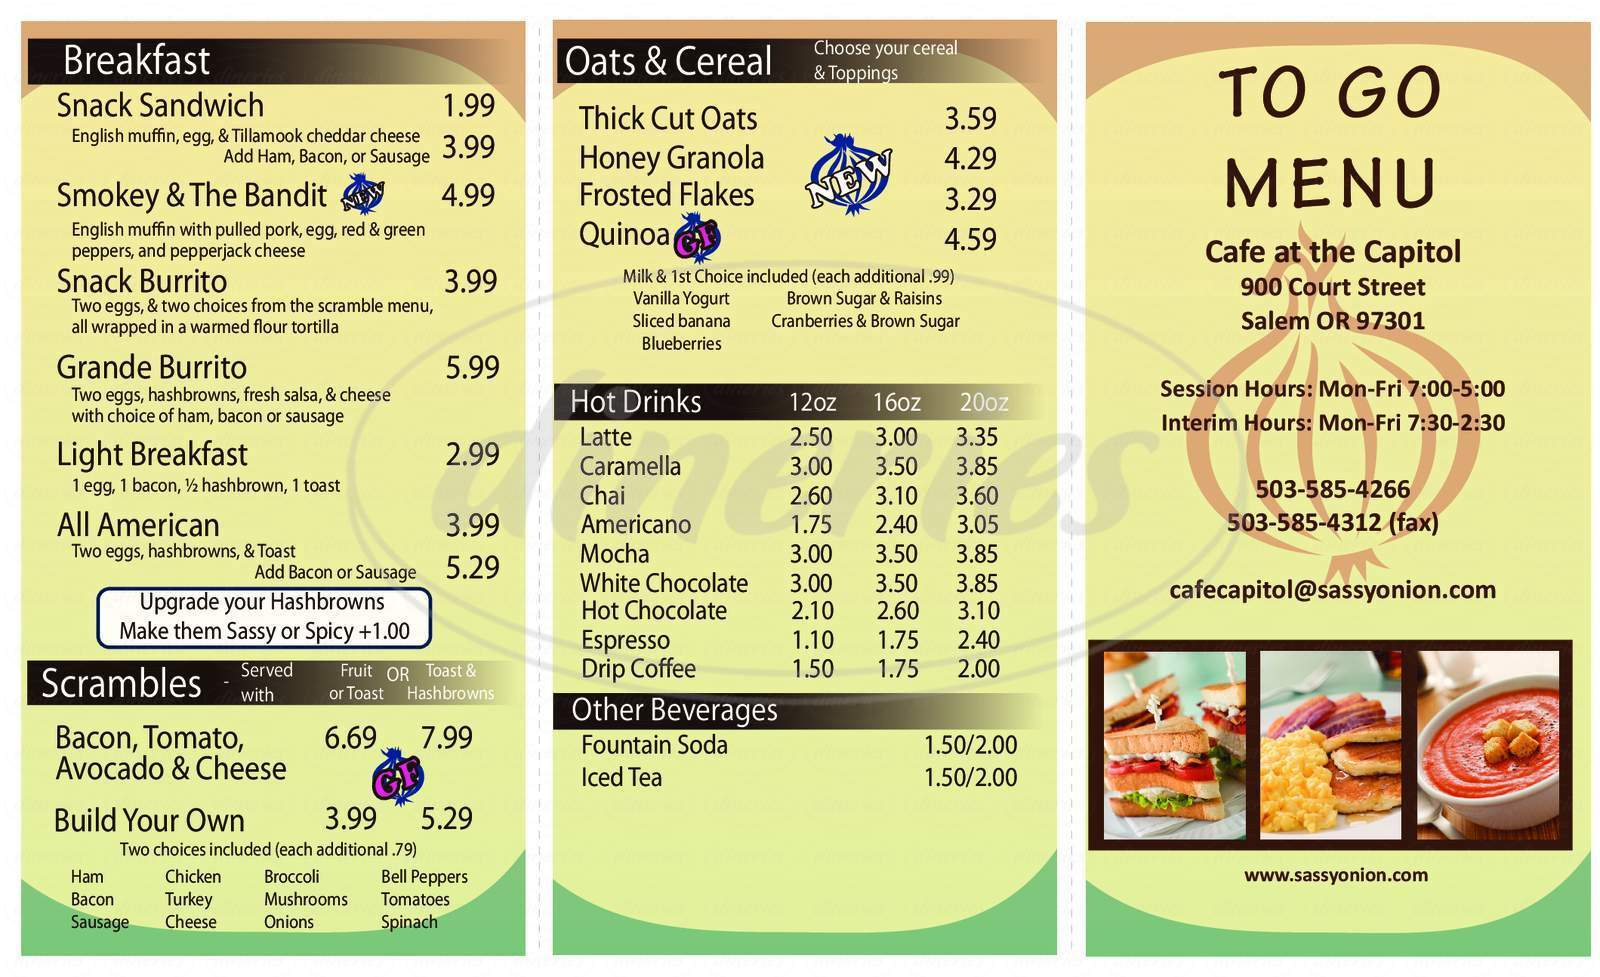 menu for Cafe At the Capital